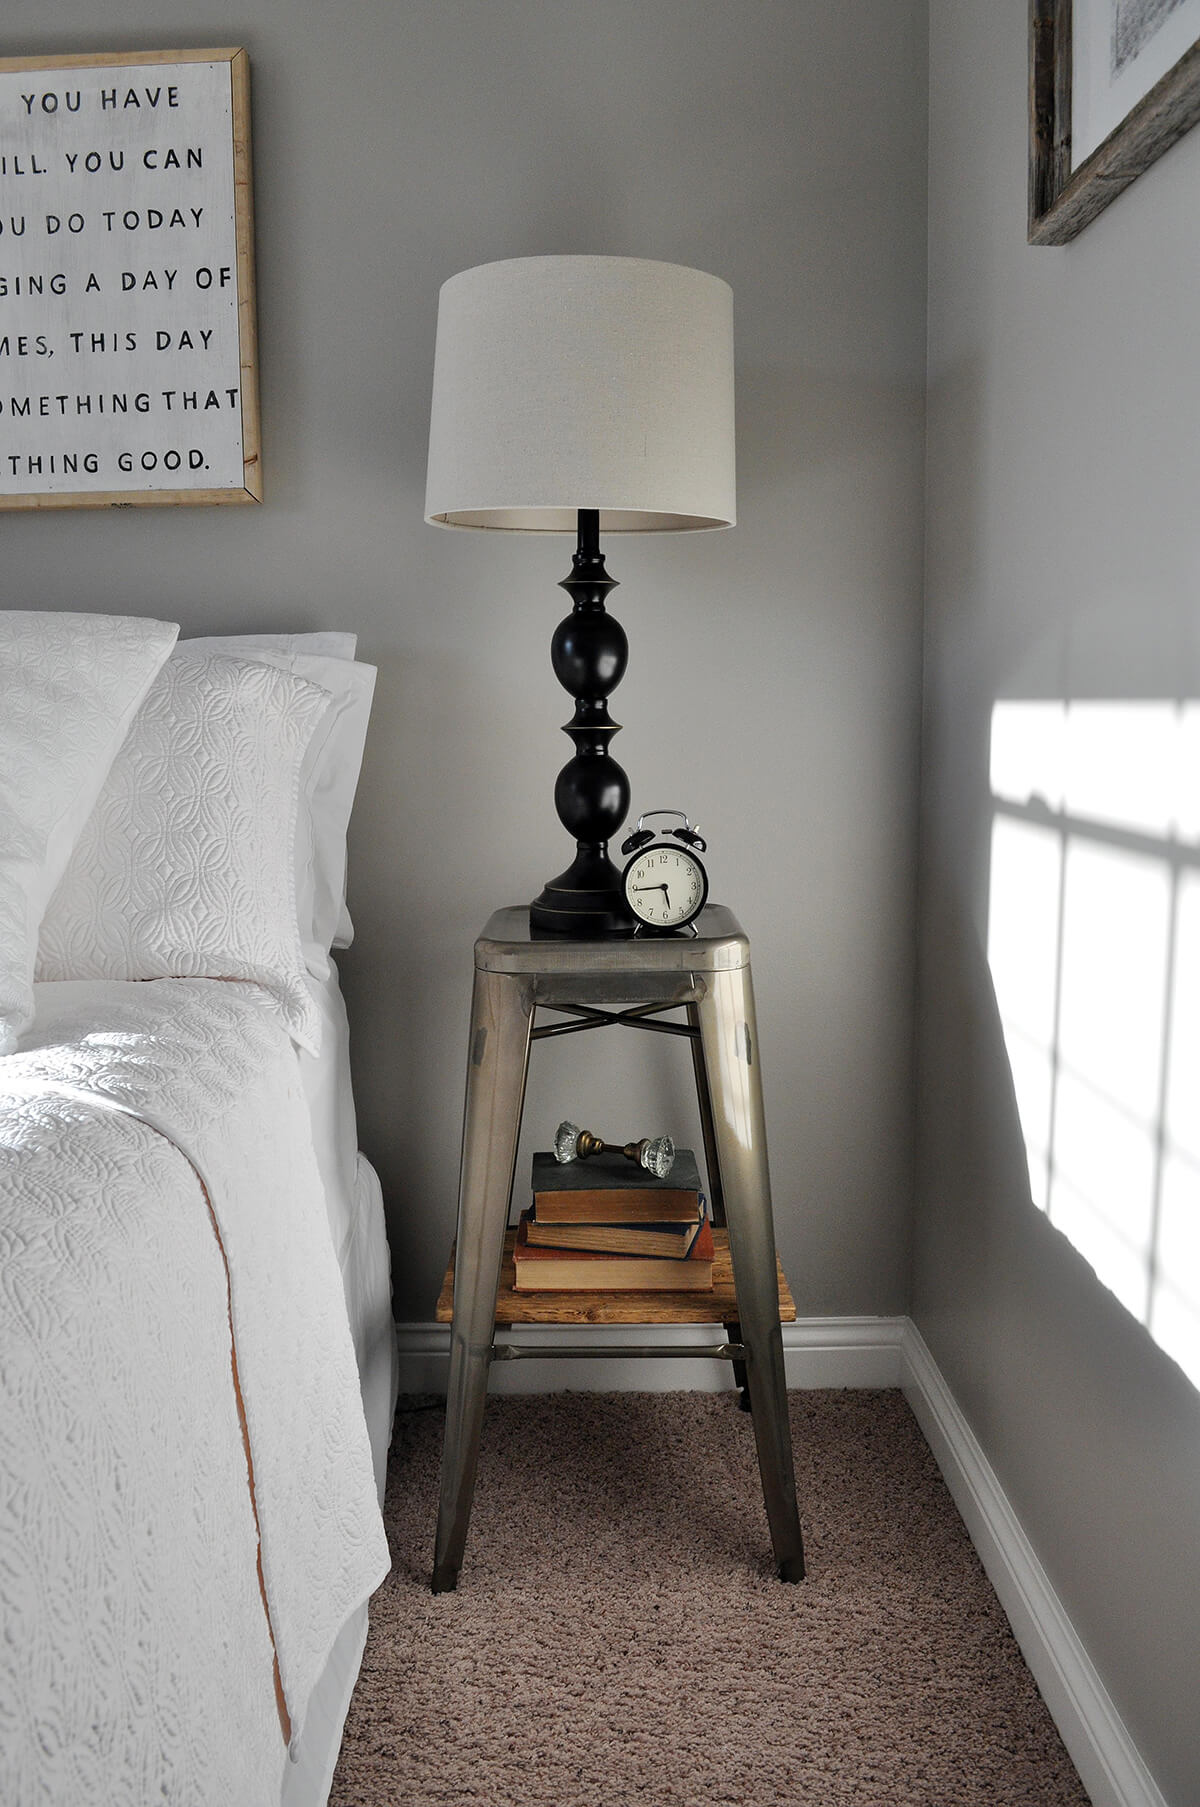 Modern Metal Nightstand Table with Lamp